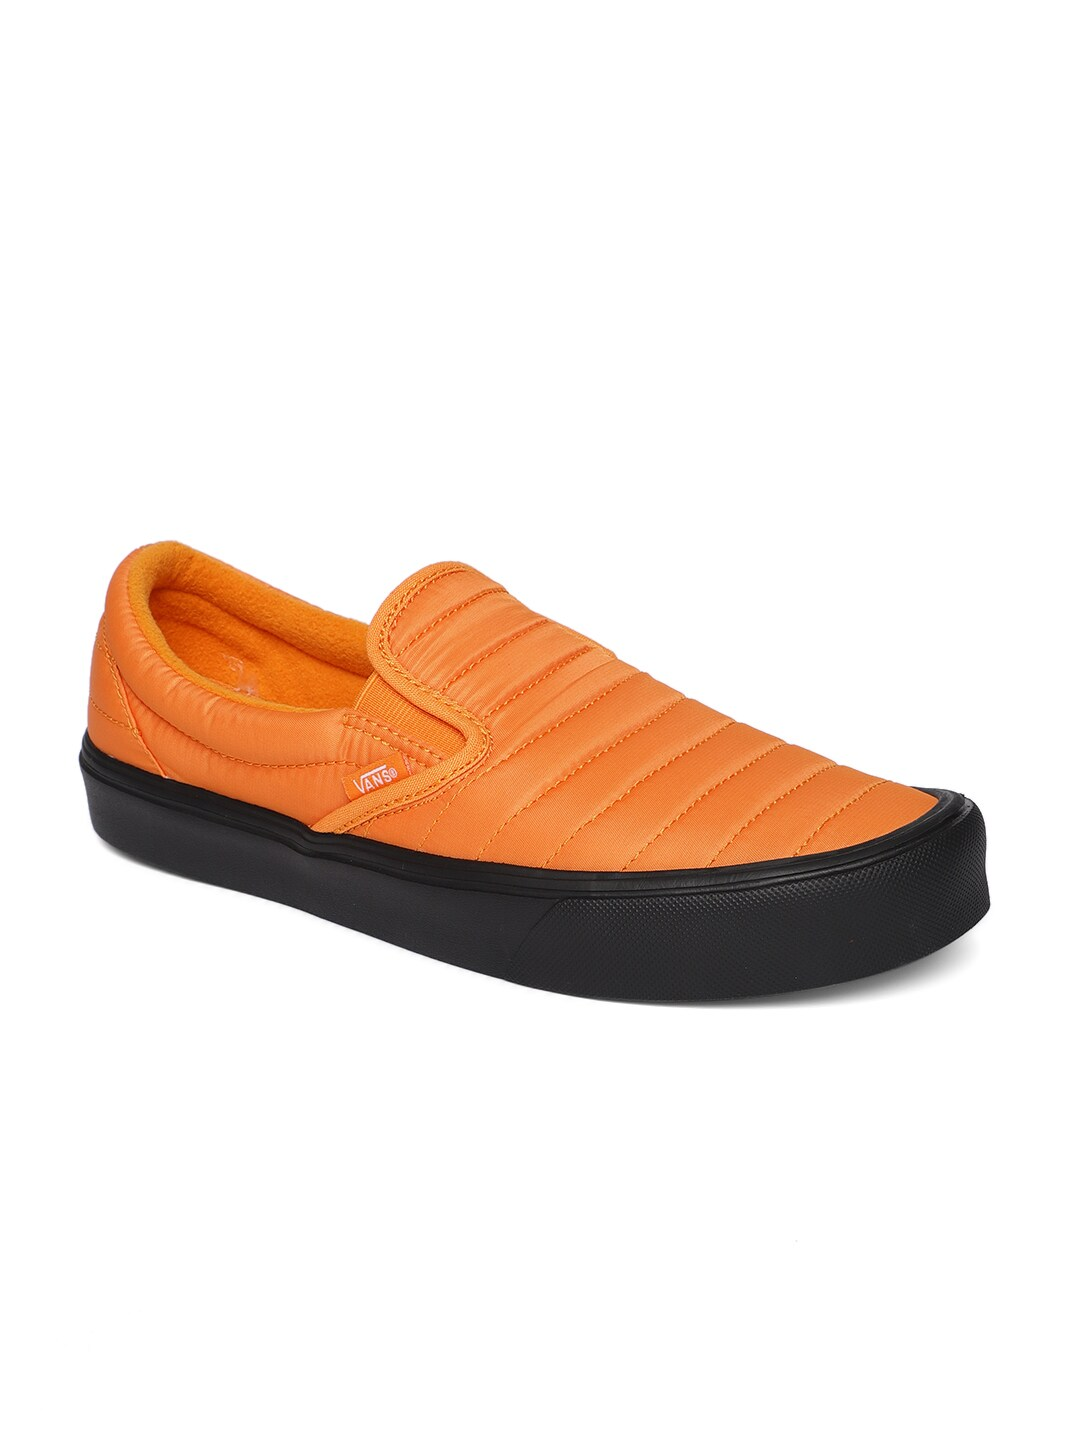 532892cd650623 Vans Classic Slip On - Buy Vans Classic Slip On online in India